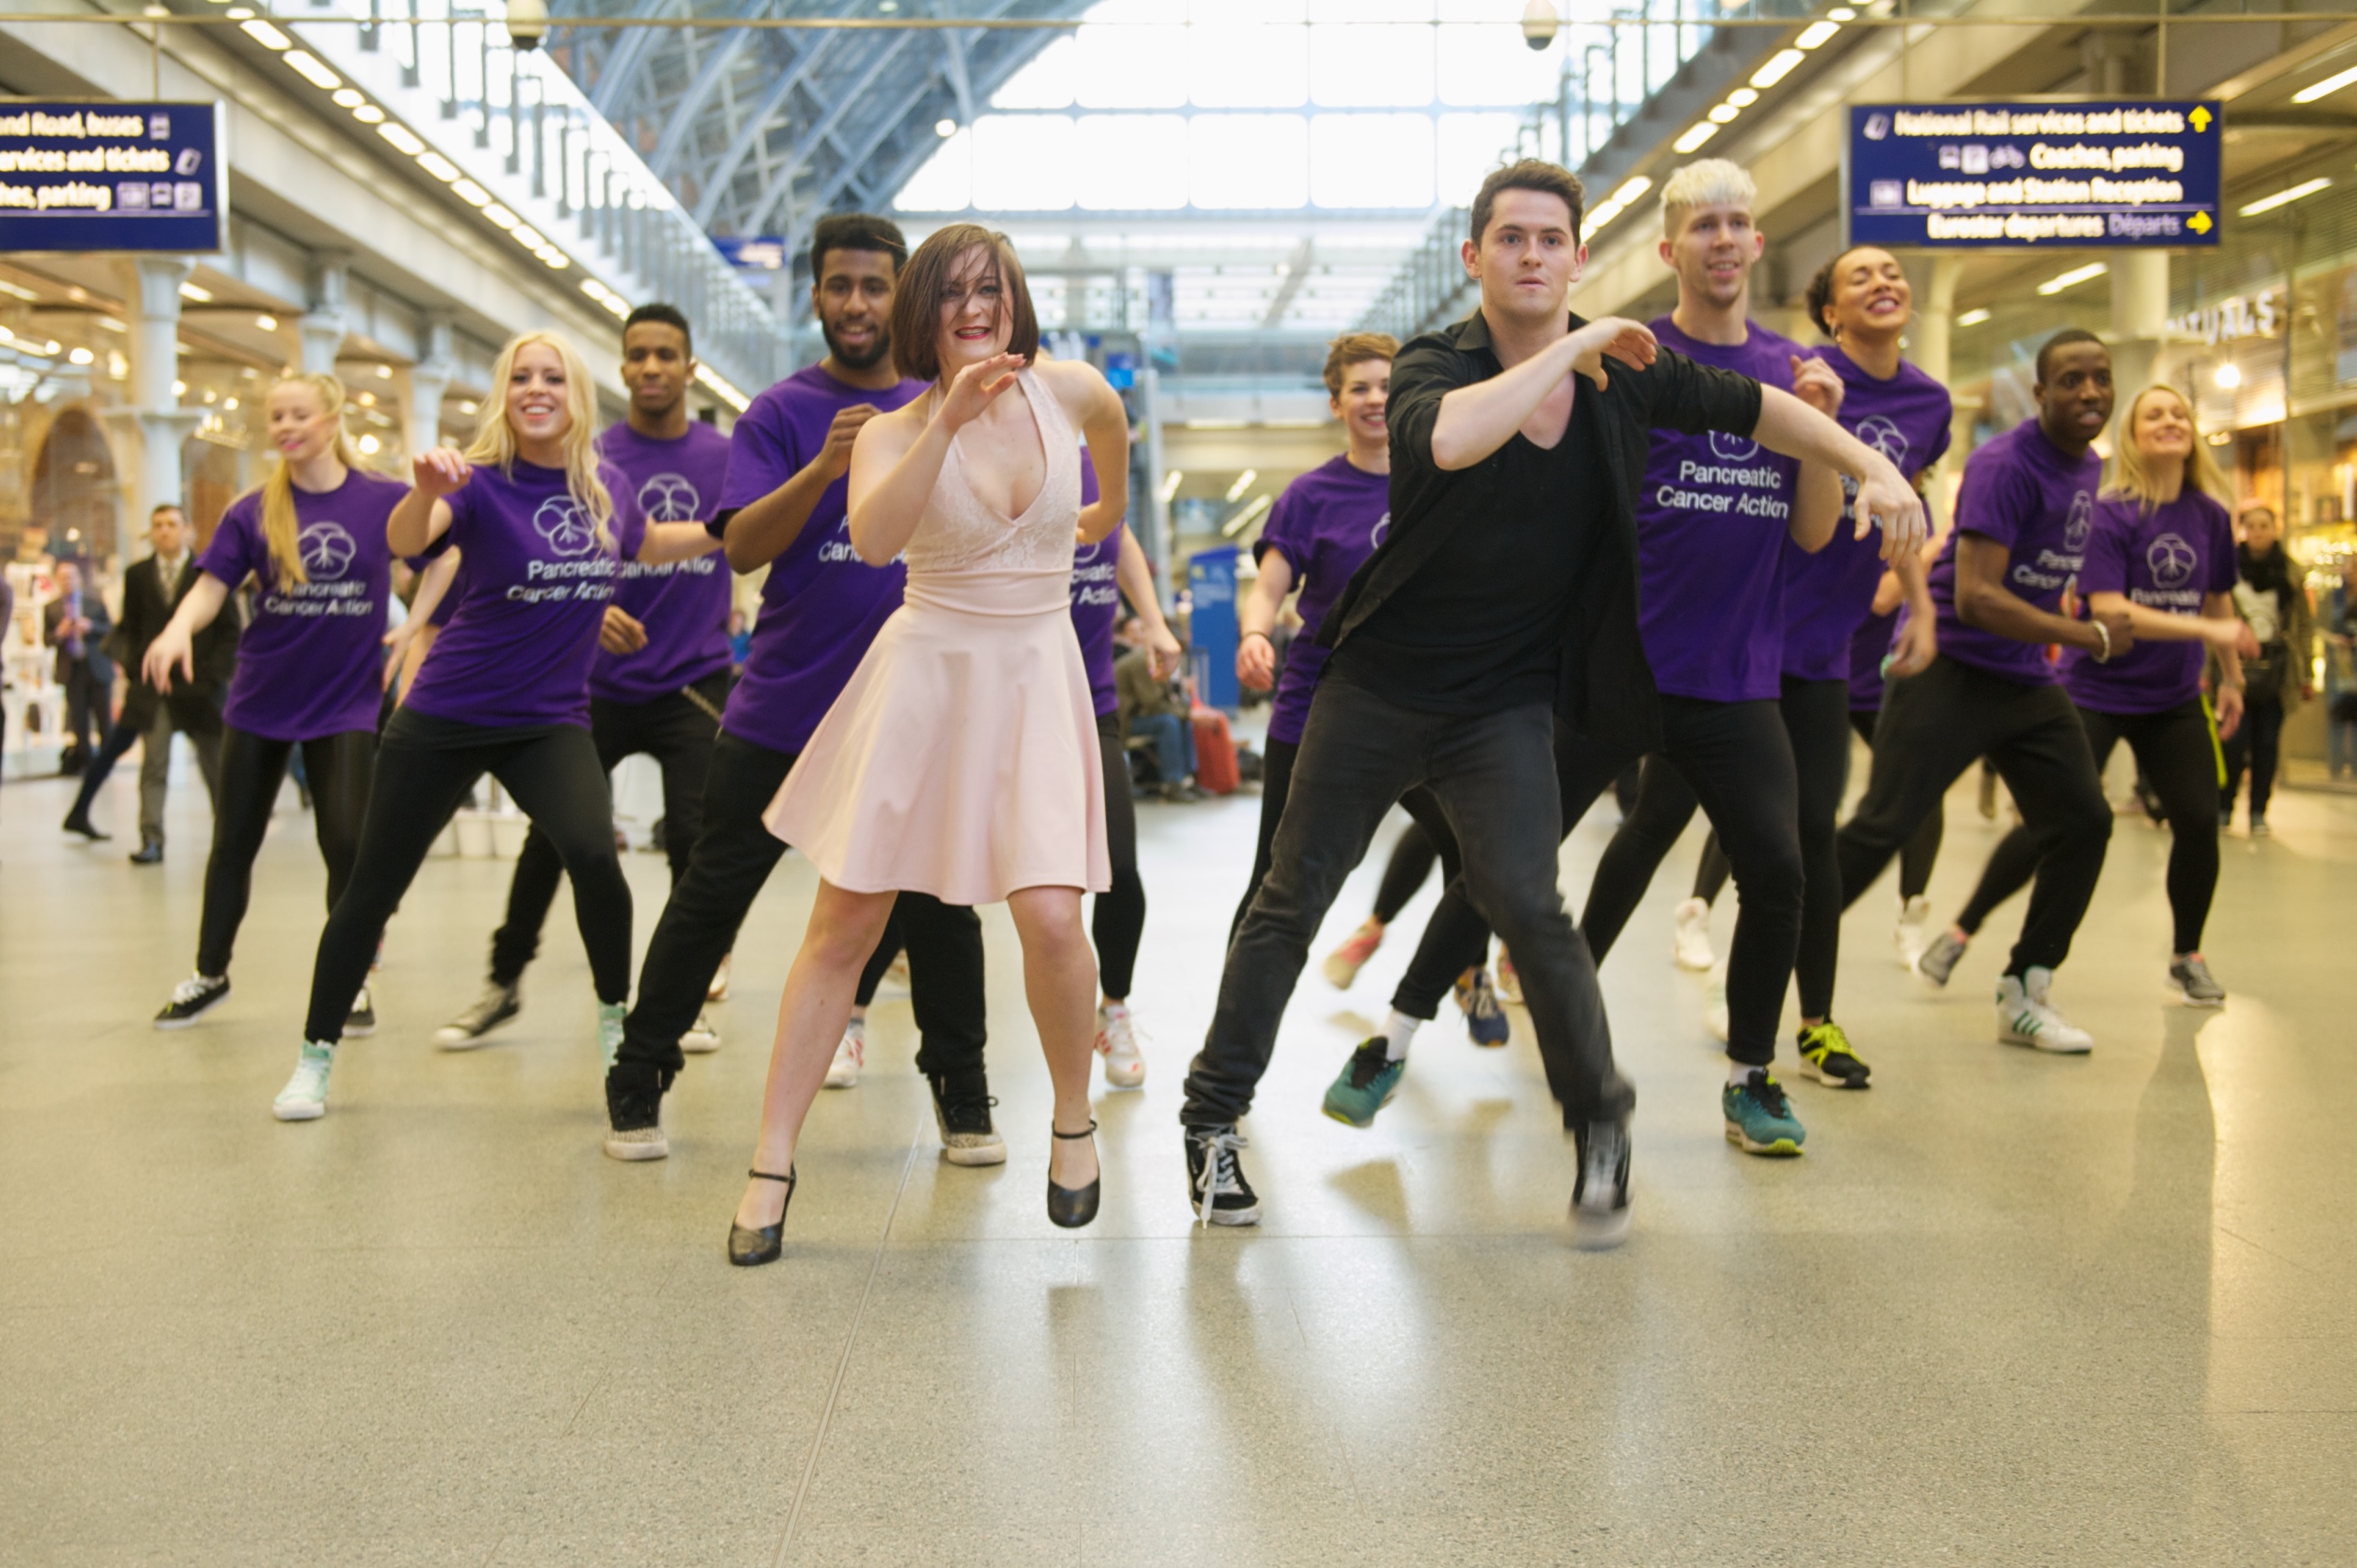 St Pancras International becomes 'St Pancreas' for impromptu charity flash mob